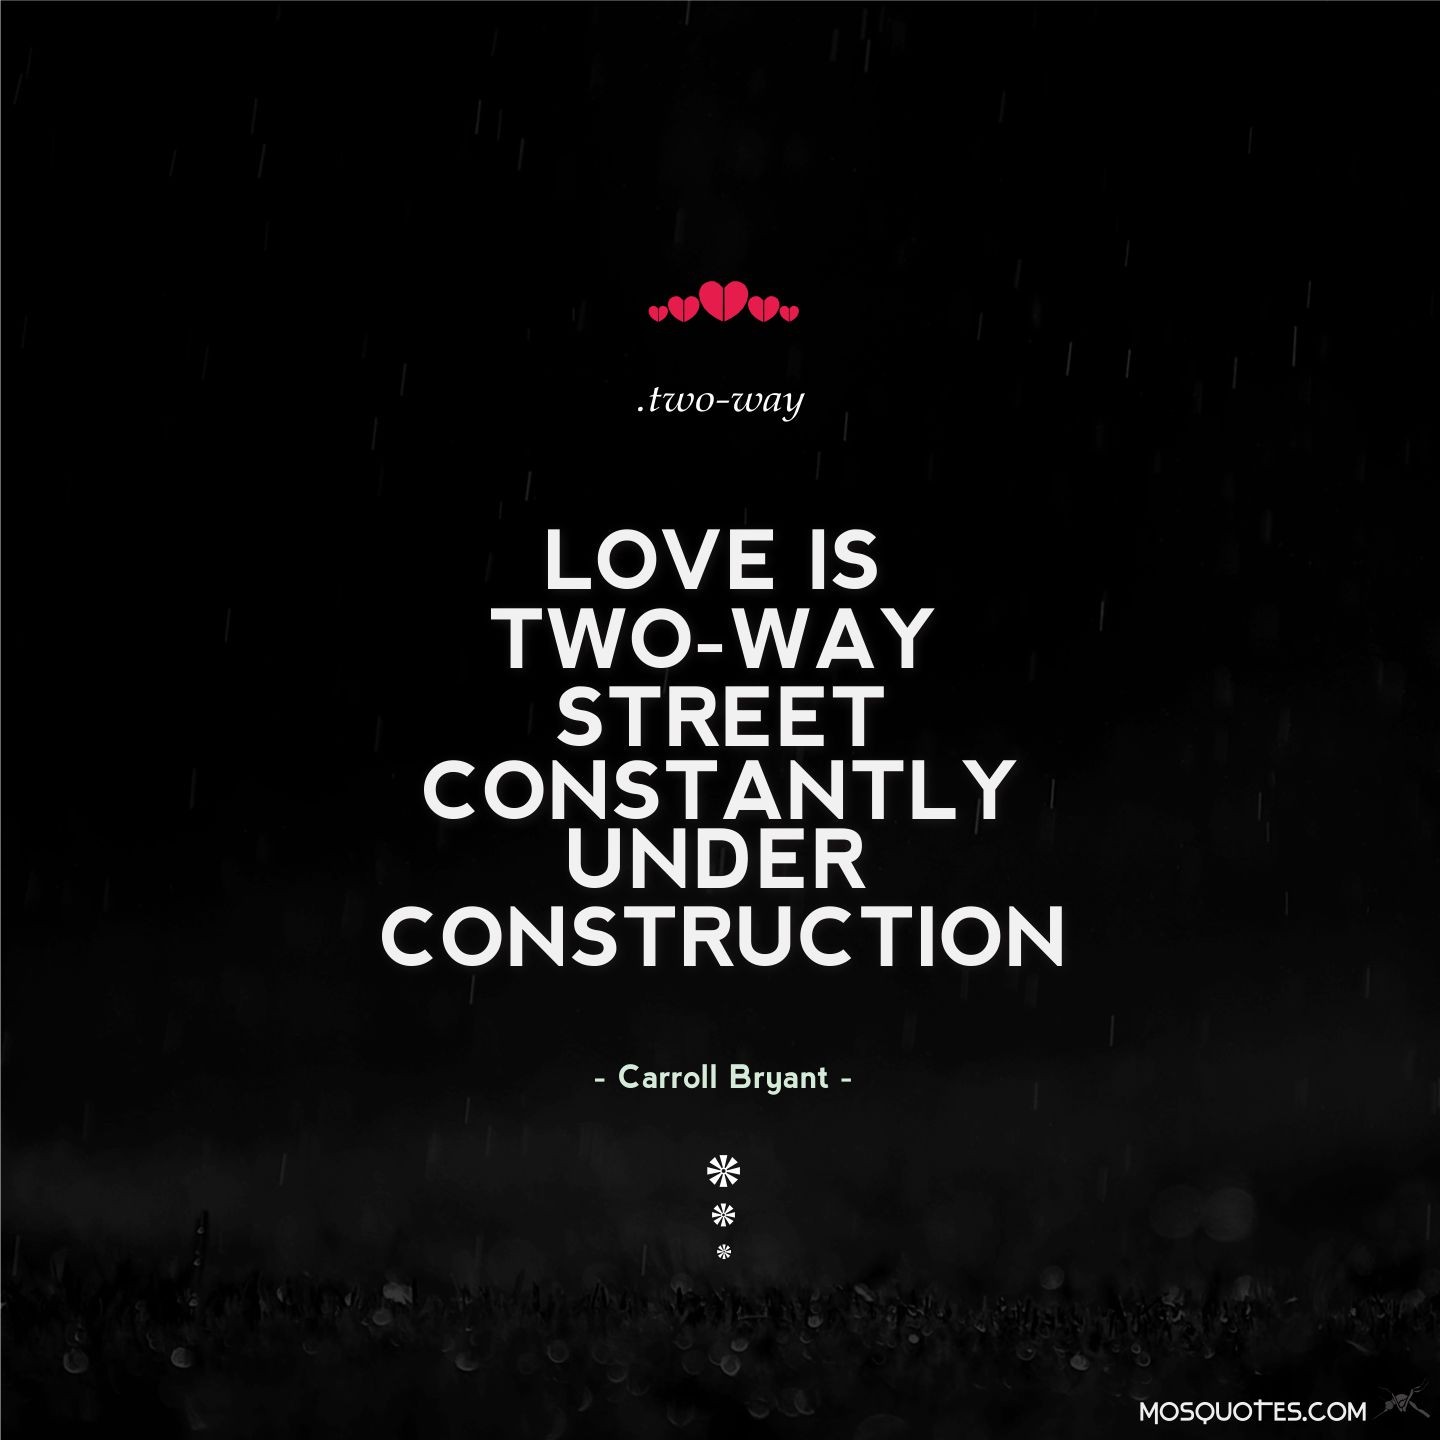 Love Finds You Quote: 2 Way Street Quotes. QuotesGram